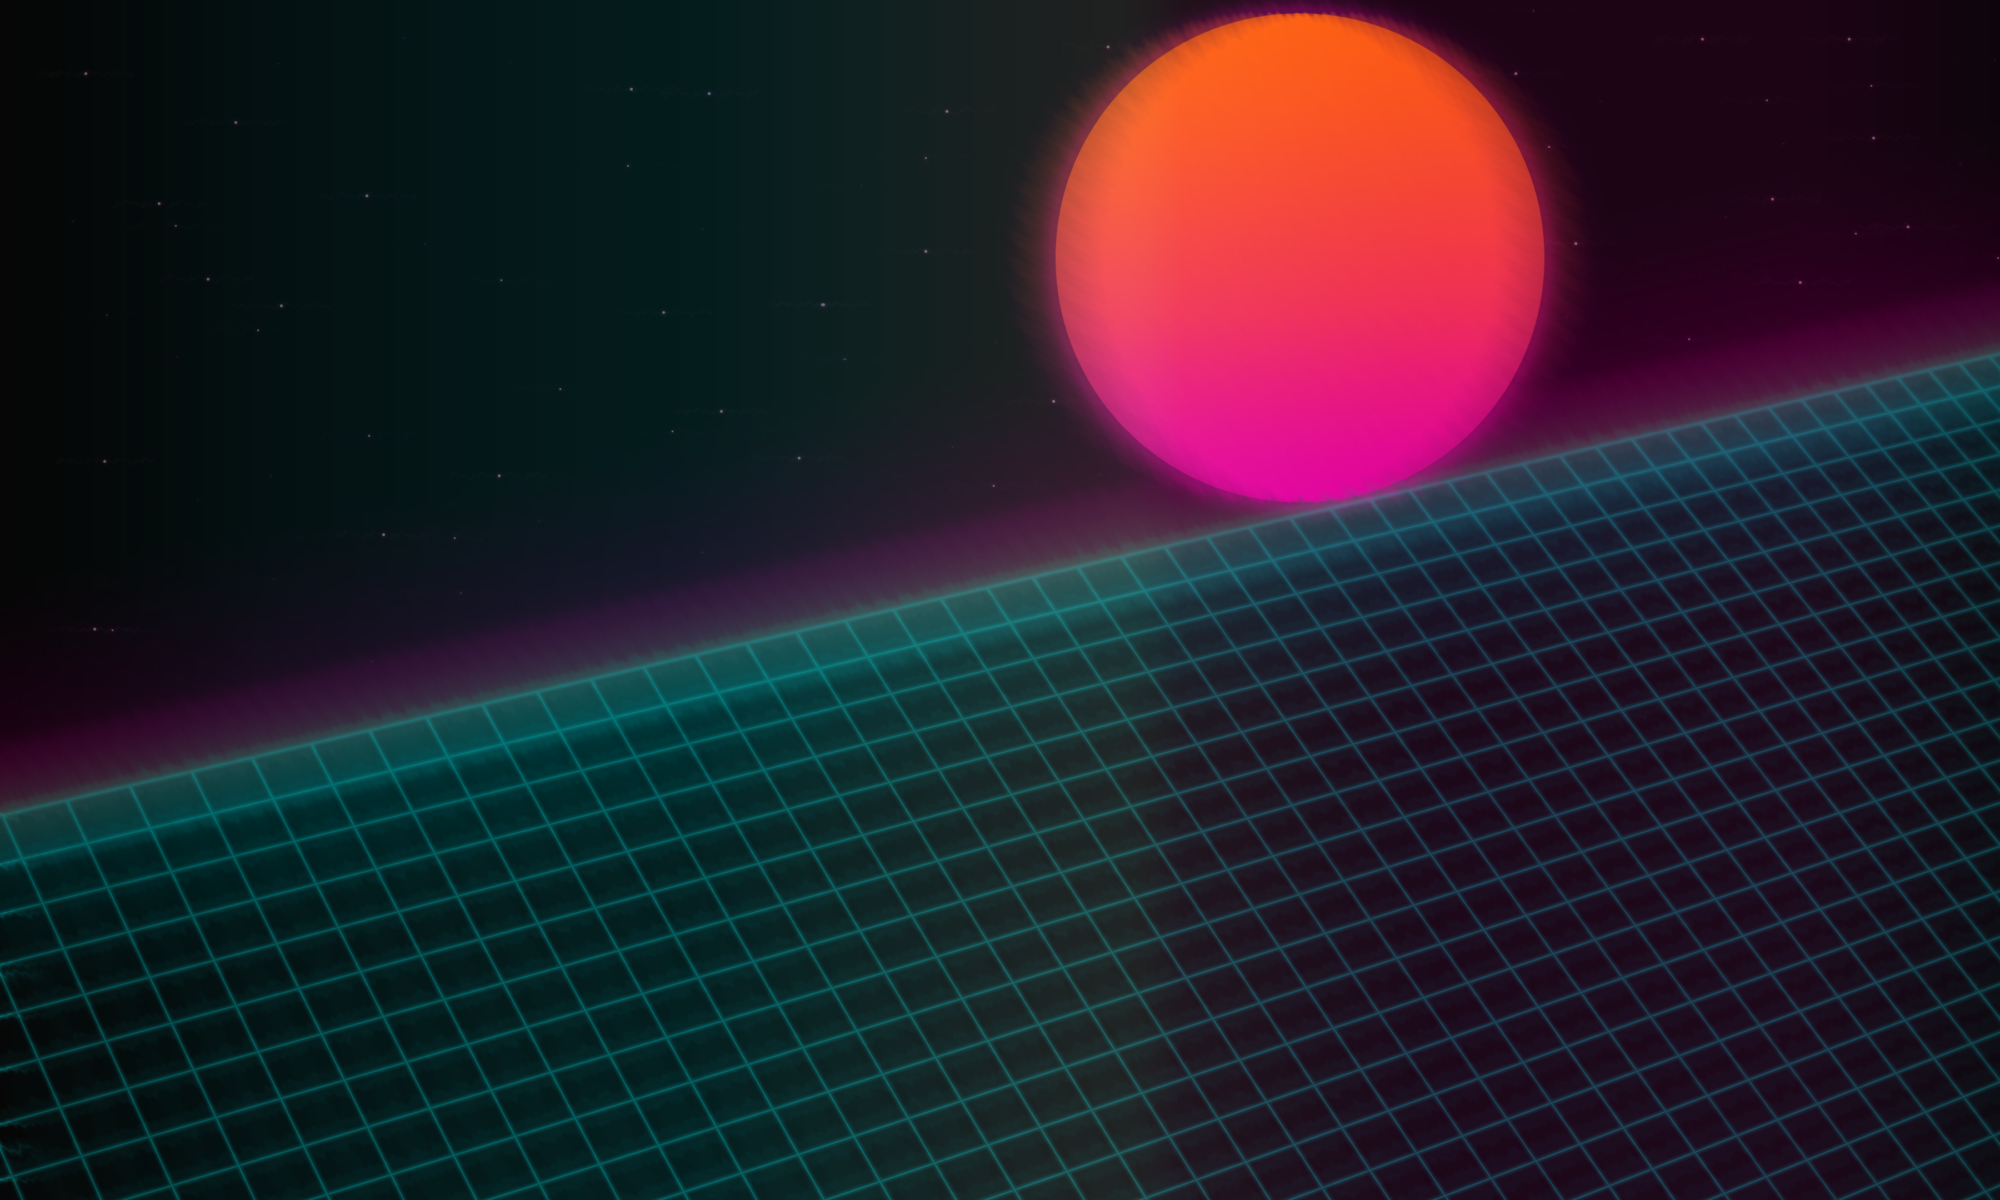 Retrowave: 80's Synthwave Style RetroPie Video Splashscreen